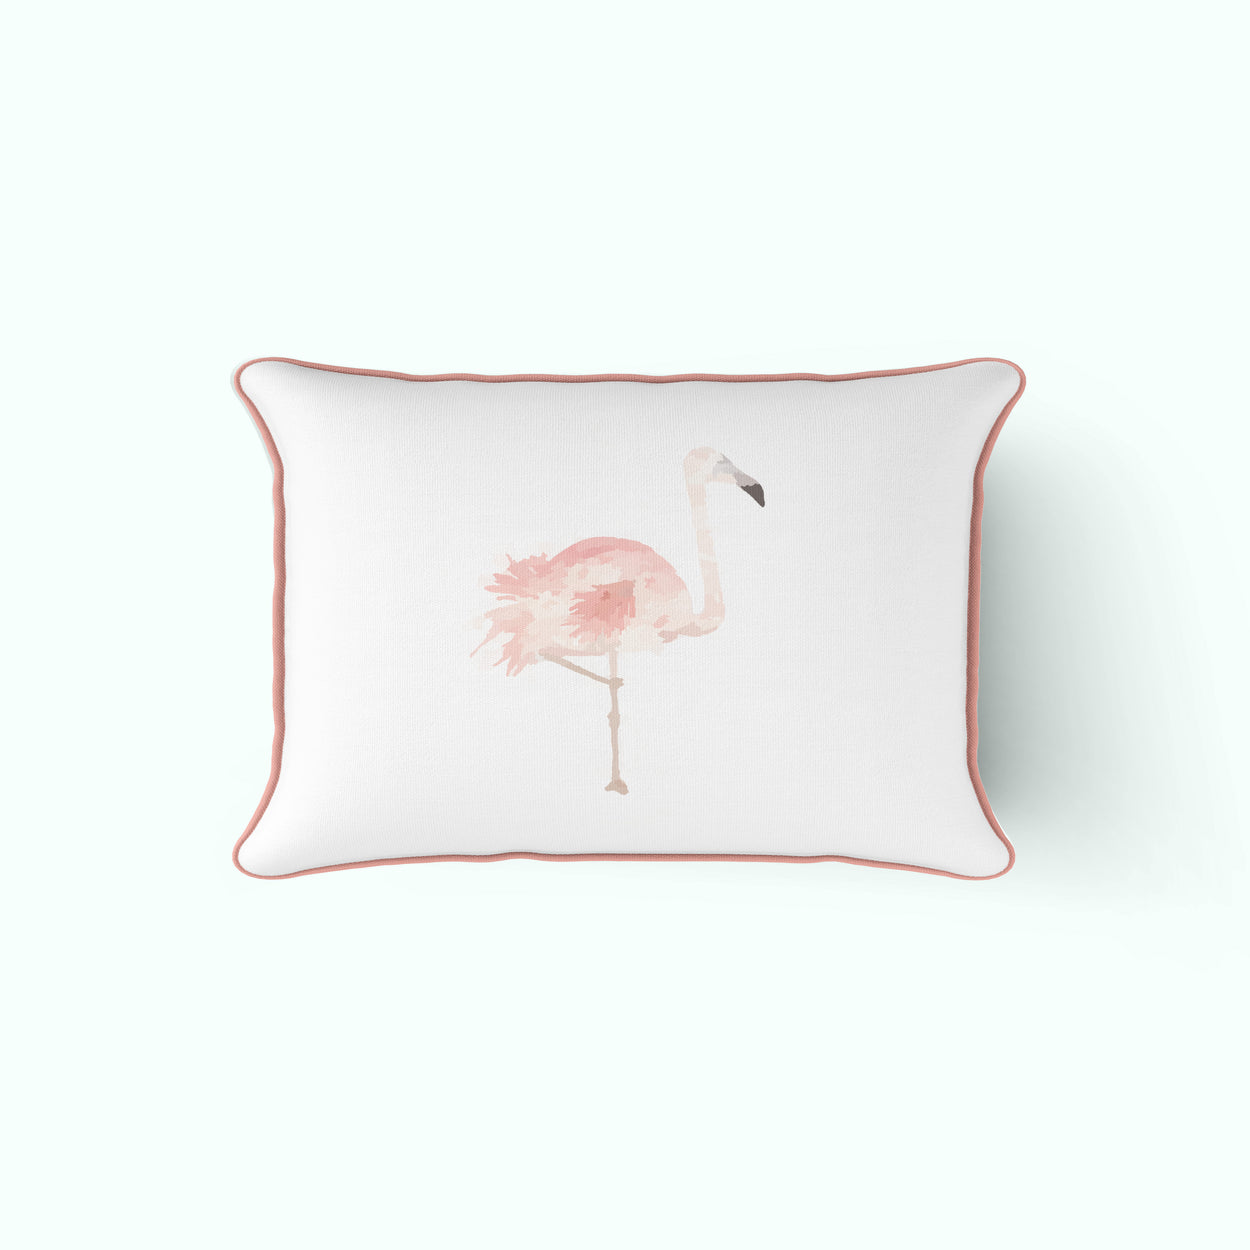 The Flamingo Pillow Lumbar Cover